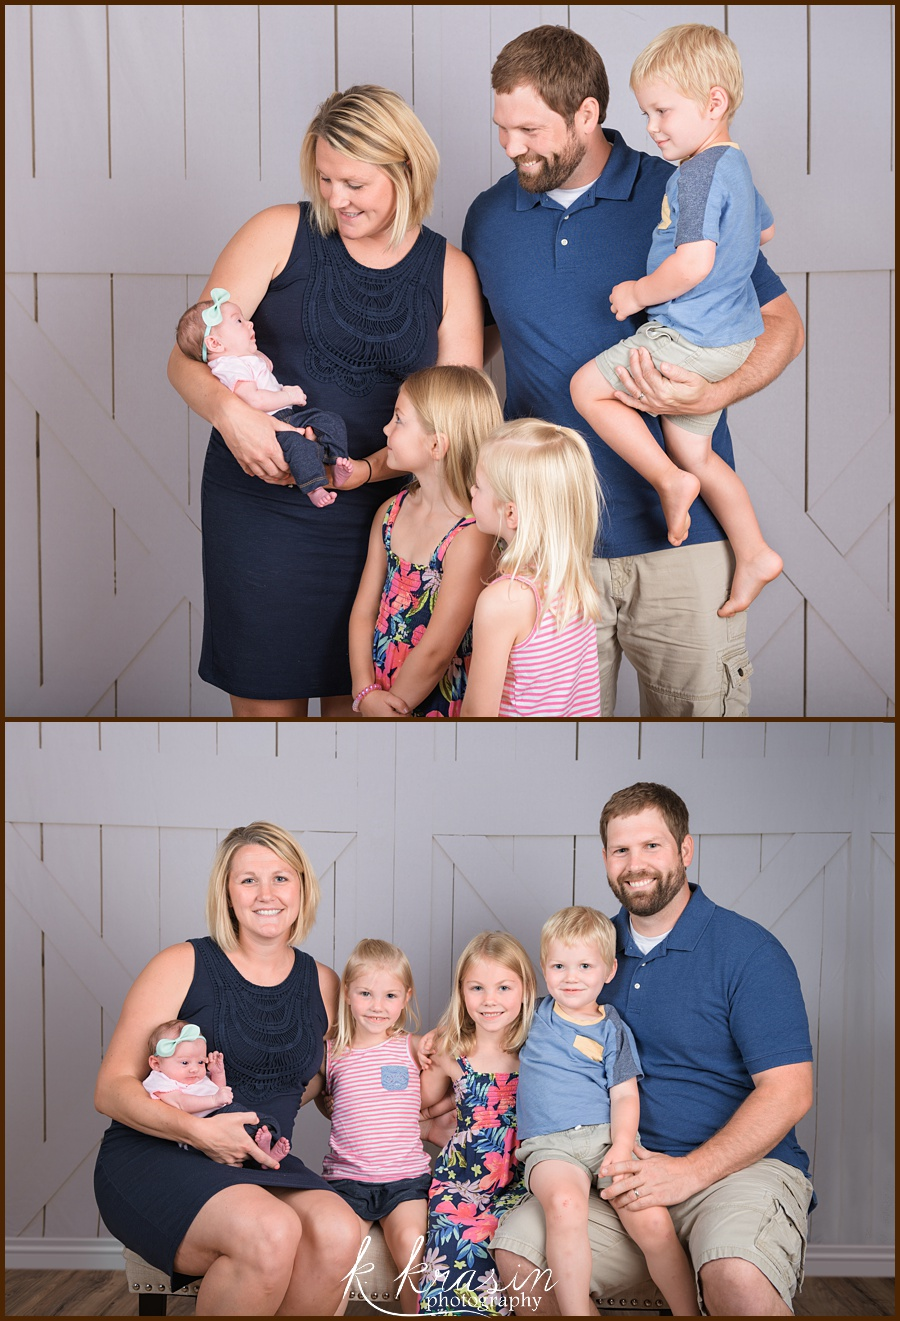 Collage of photos of parents, two girls, a boy, and a newborn girl